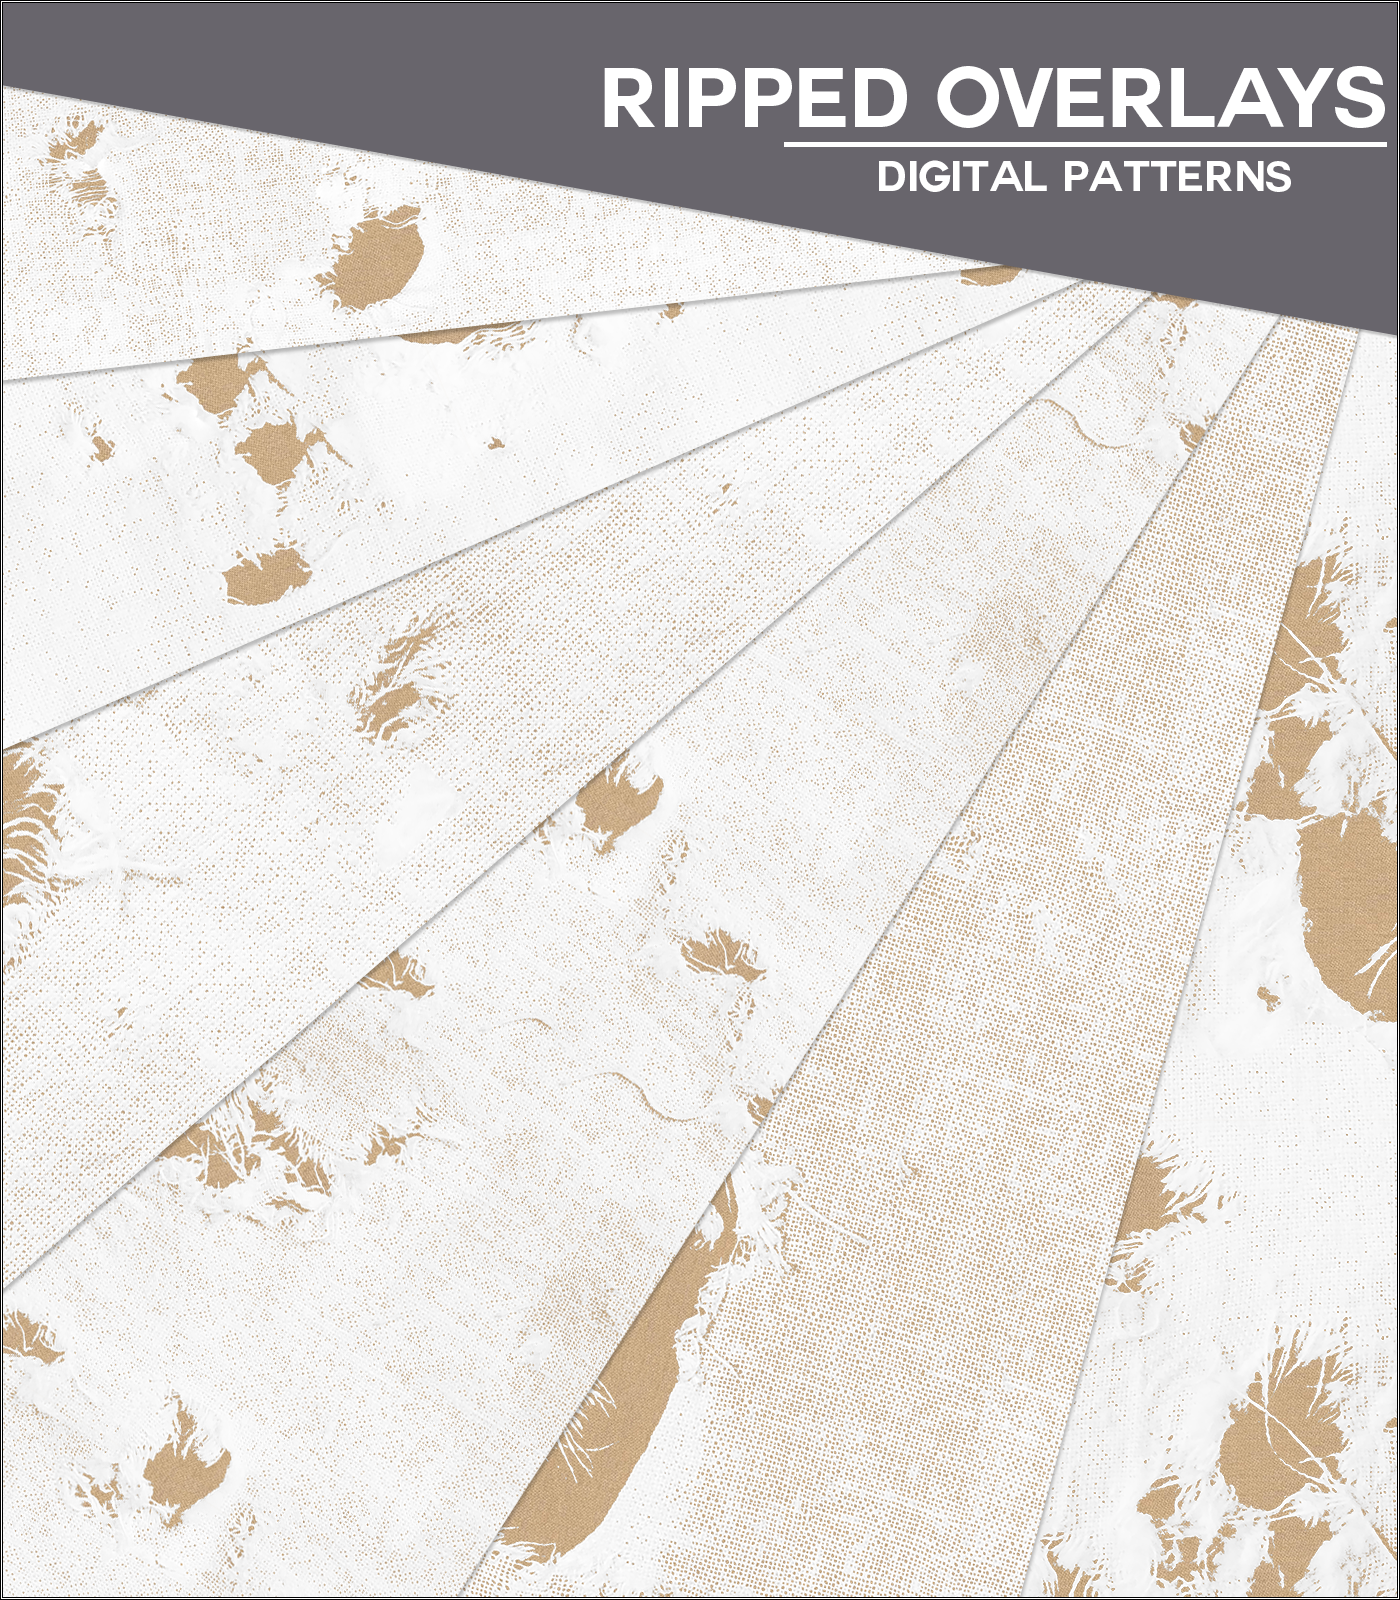 Ripped - Fabric Overlays